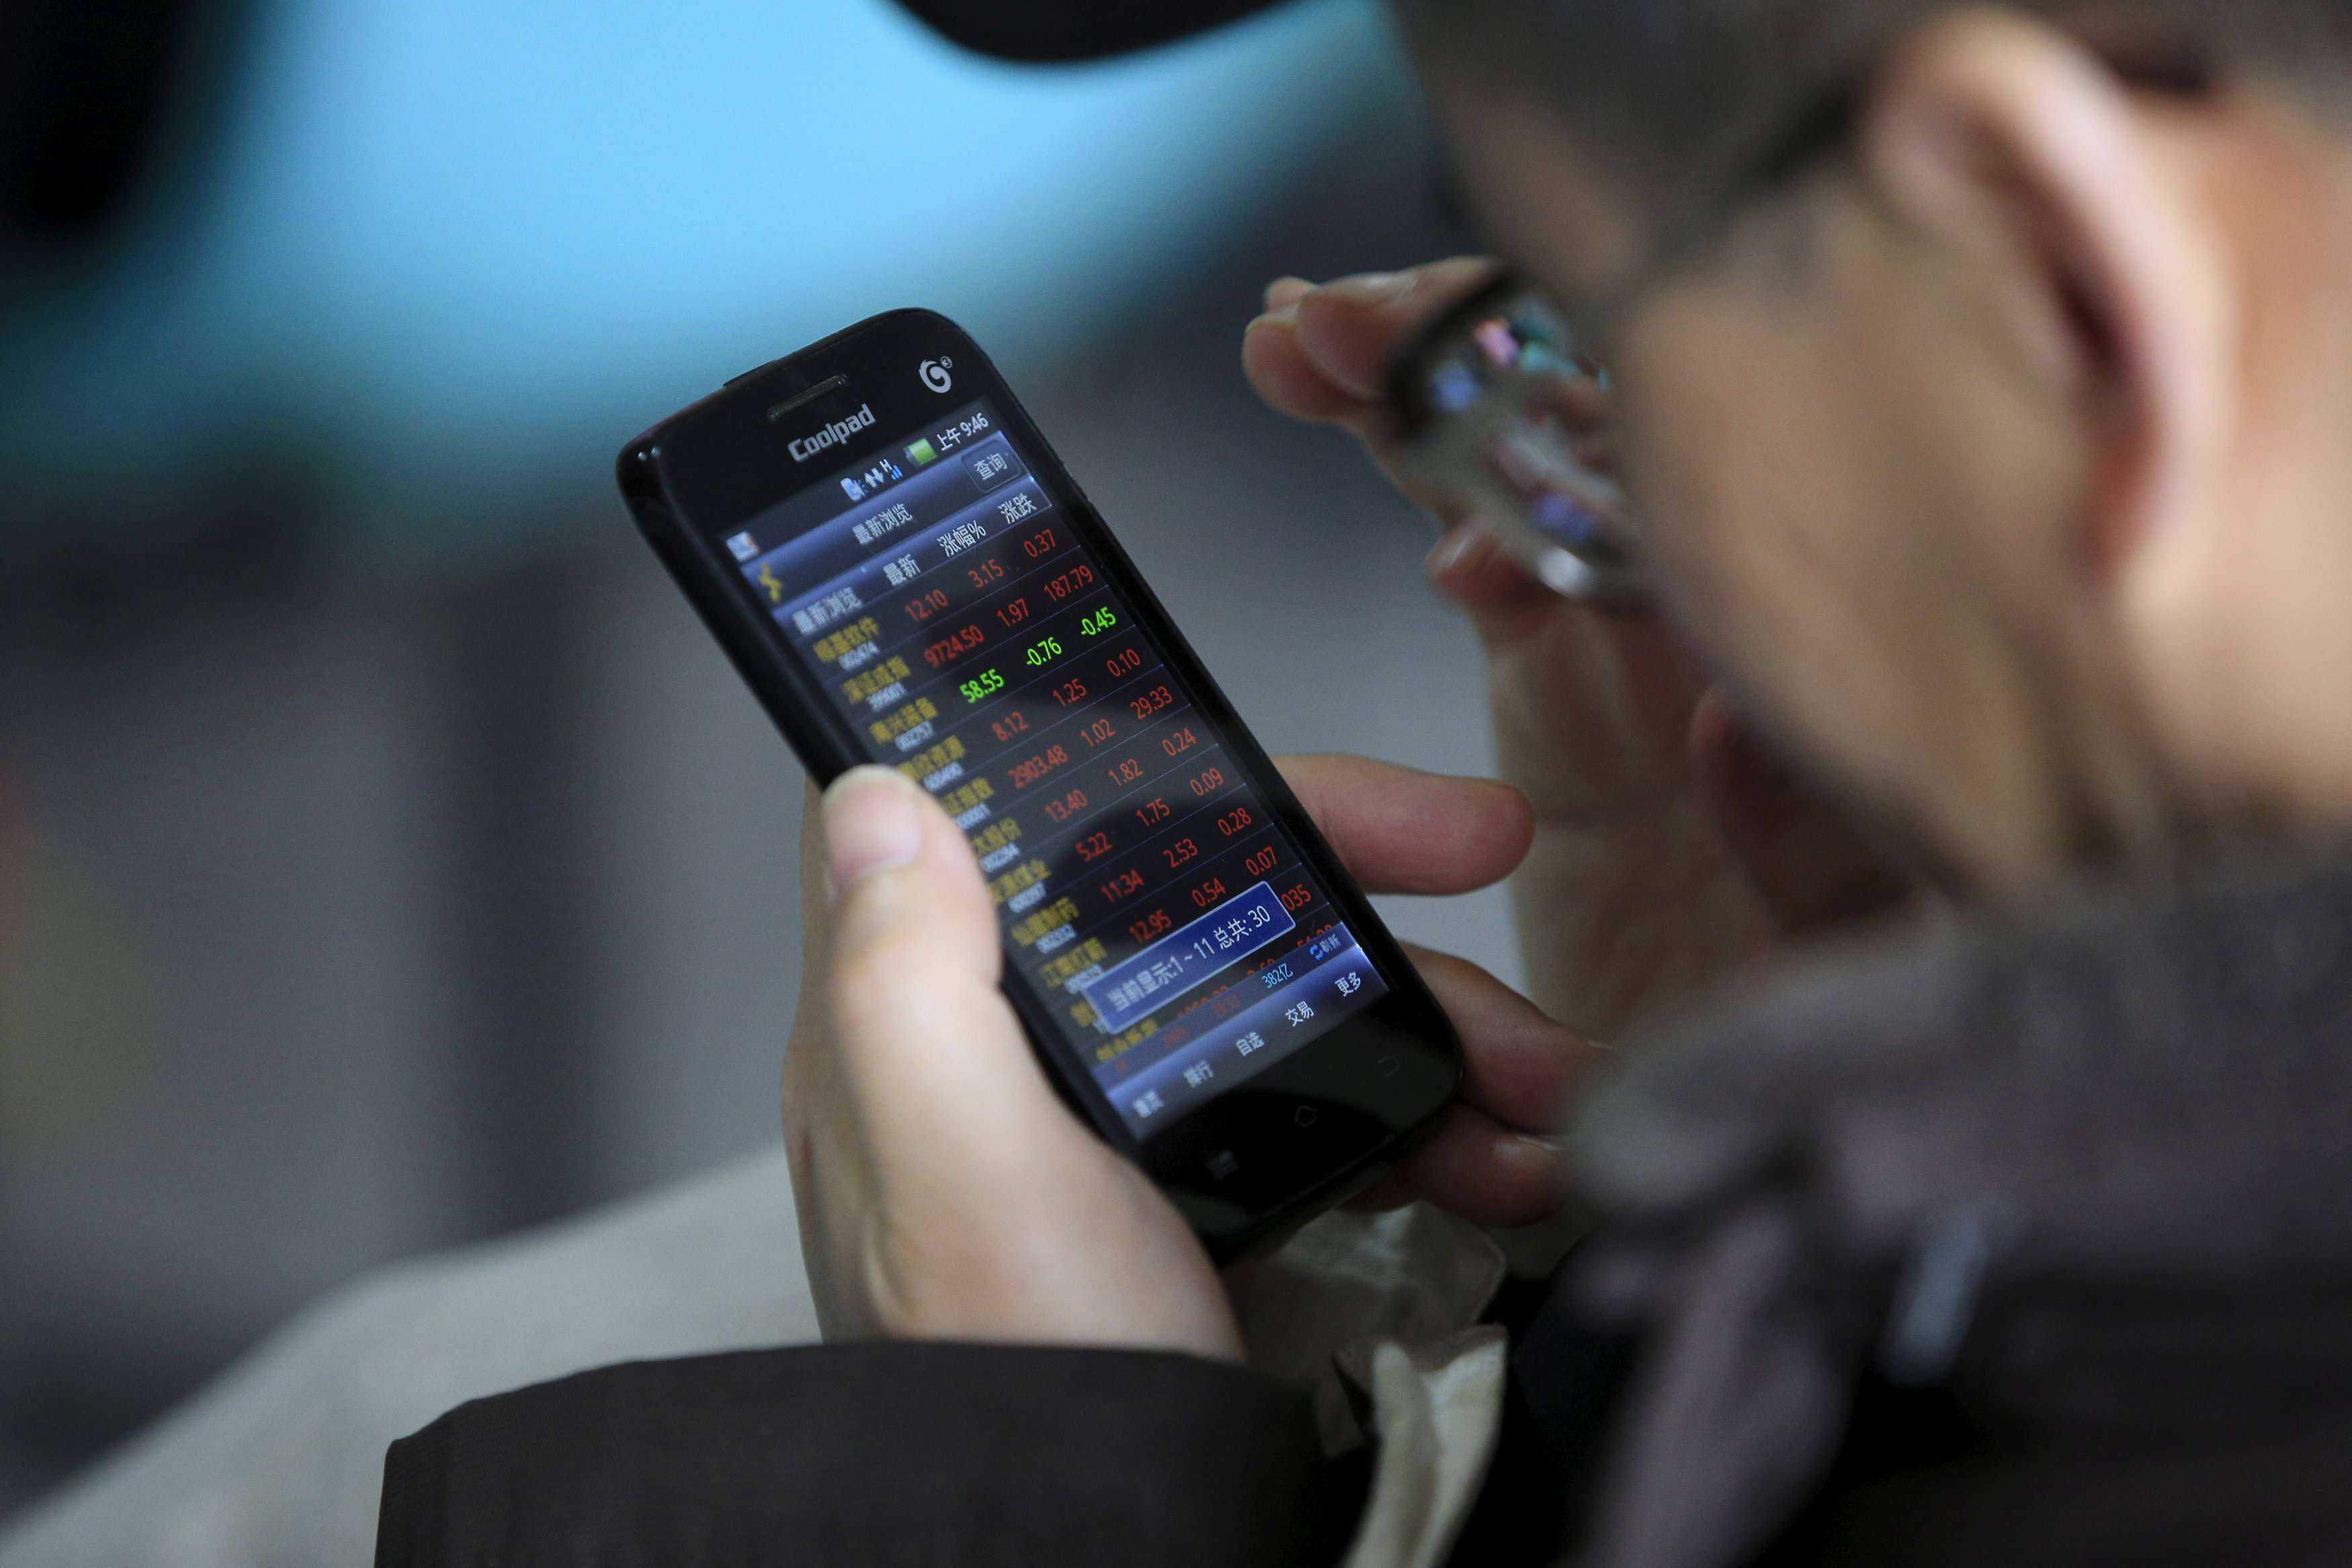 China nears full mobile broadband coverage on back of increased 4G